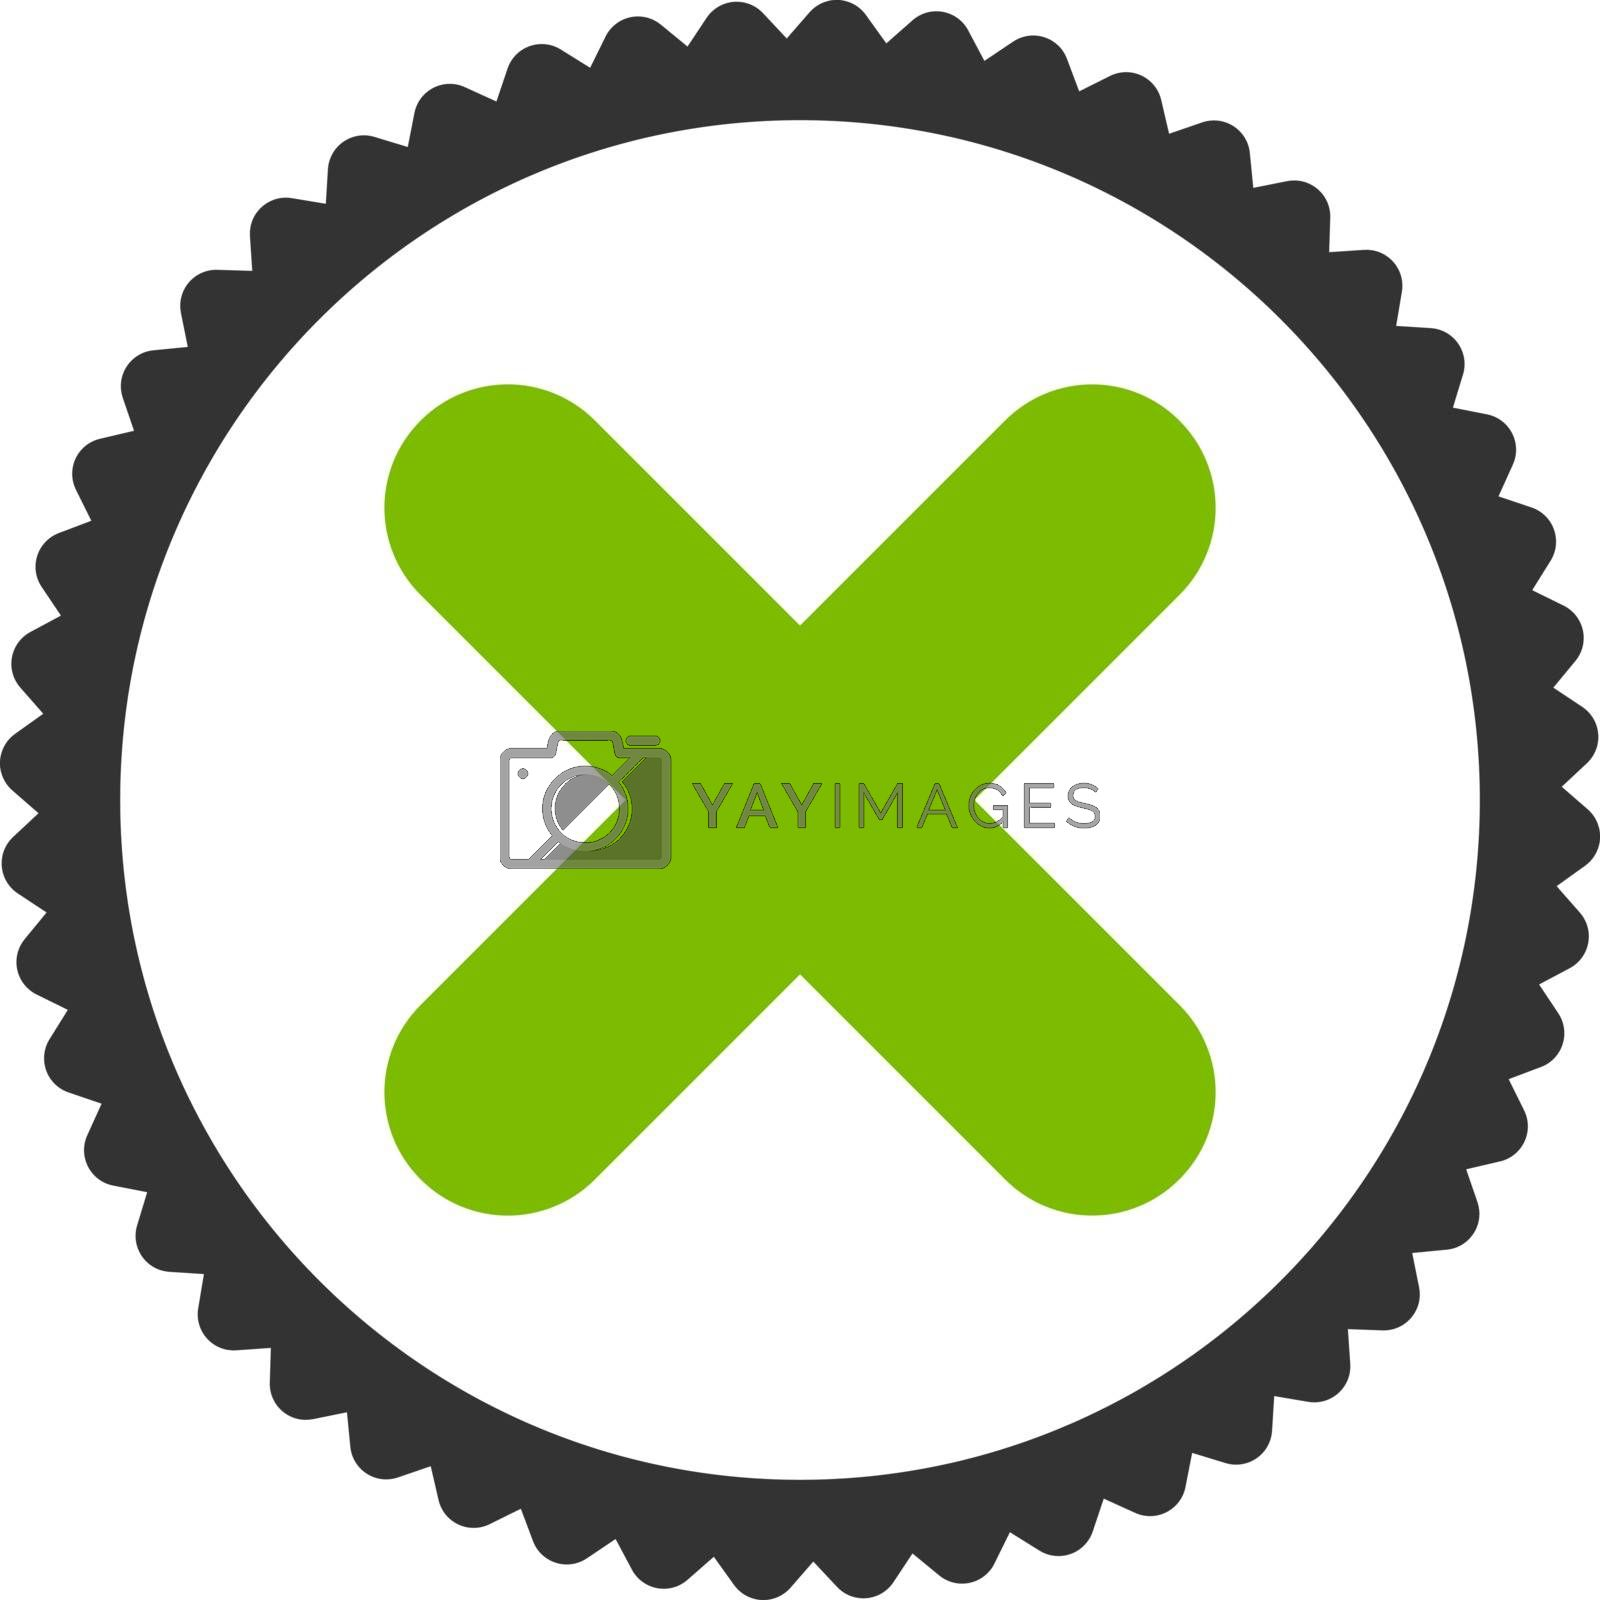 Cancel flat eco green and gray colors round stamp icon by Aha-Soft